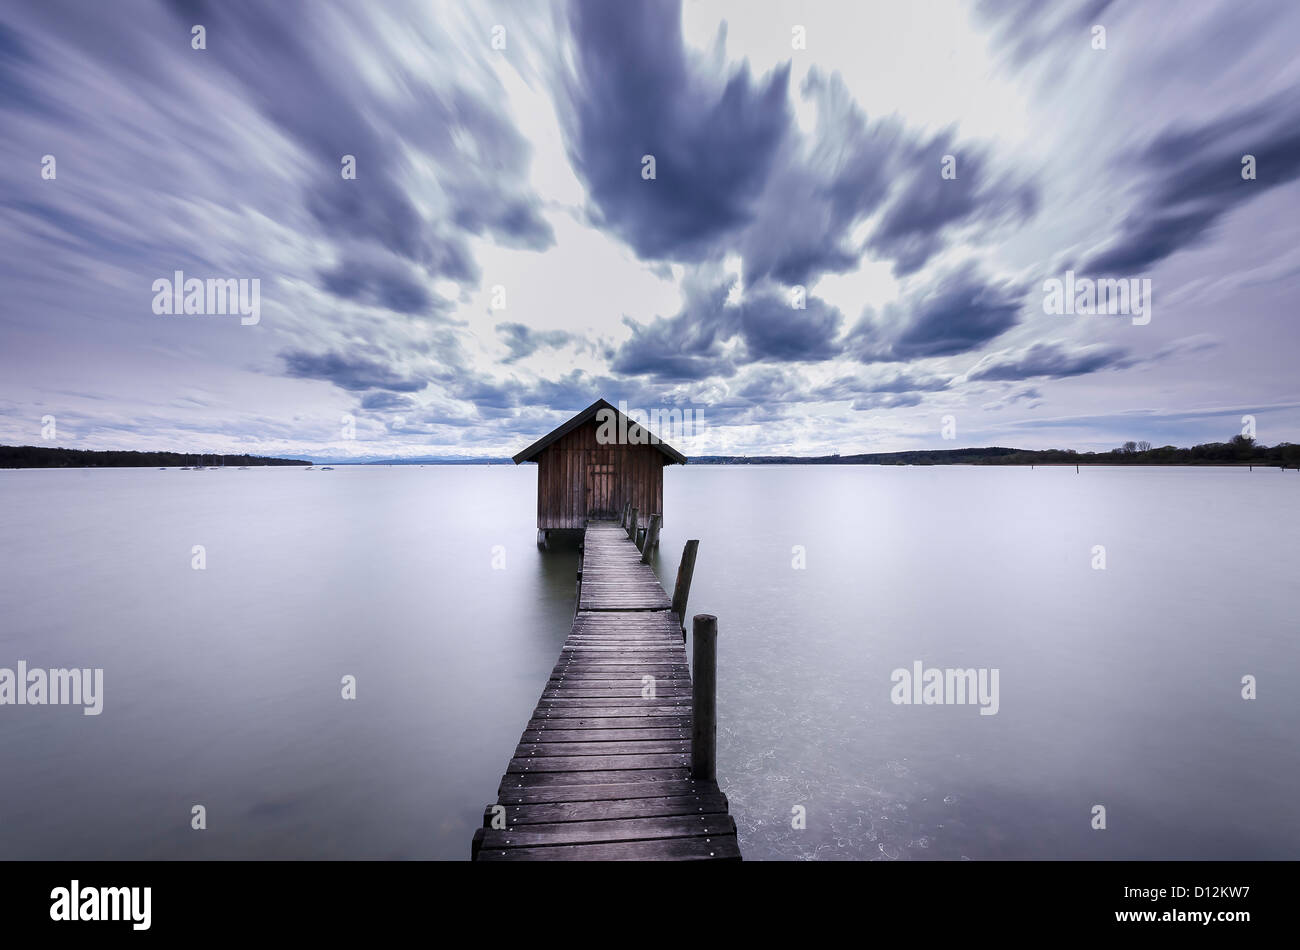 In Germania, in Baviera, vista di boathouse con Pier a Lago Ammersee Immagini Stock